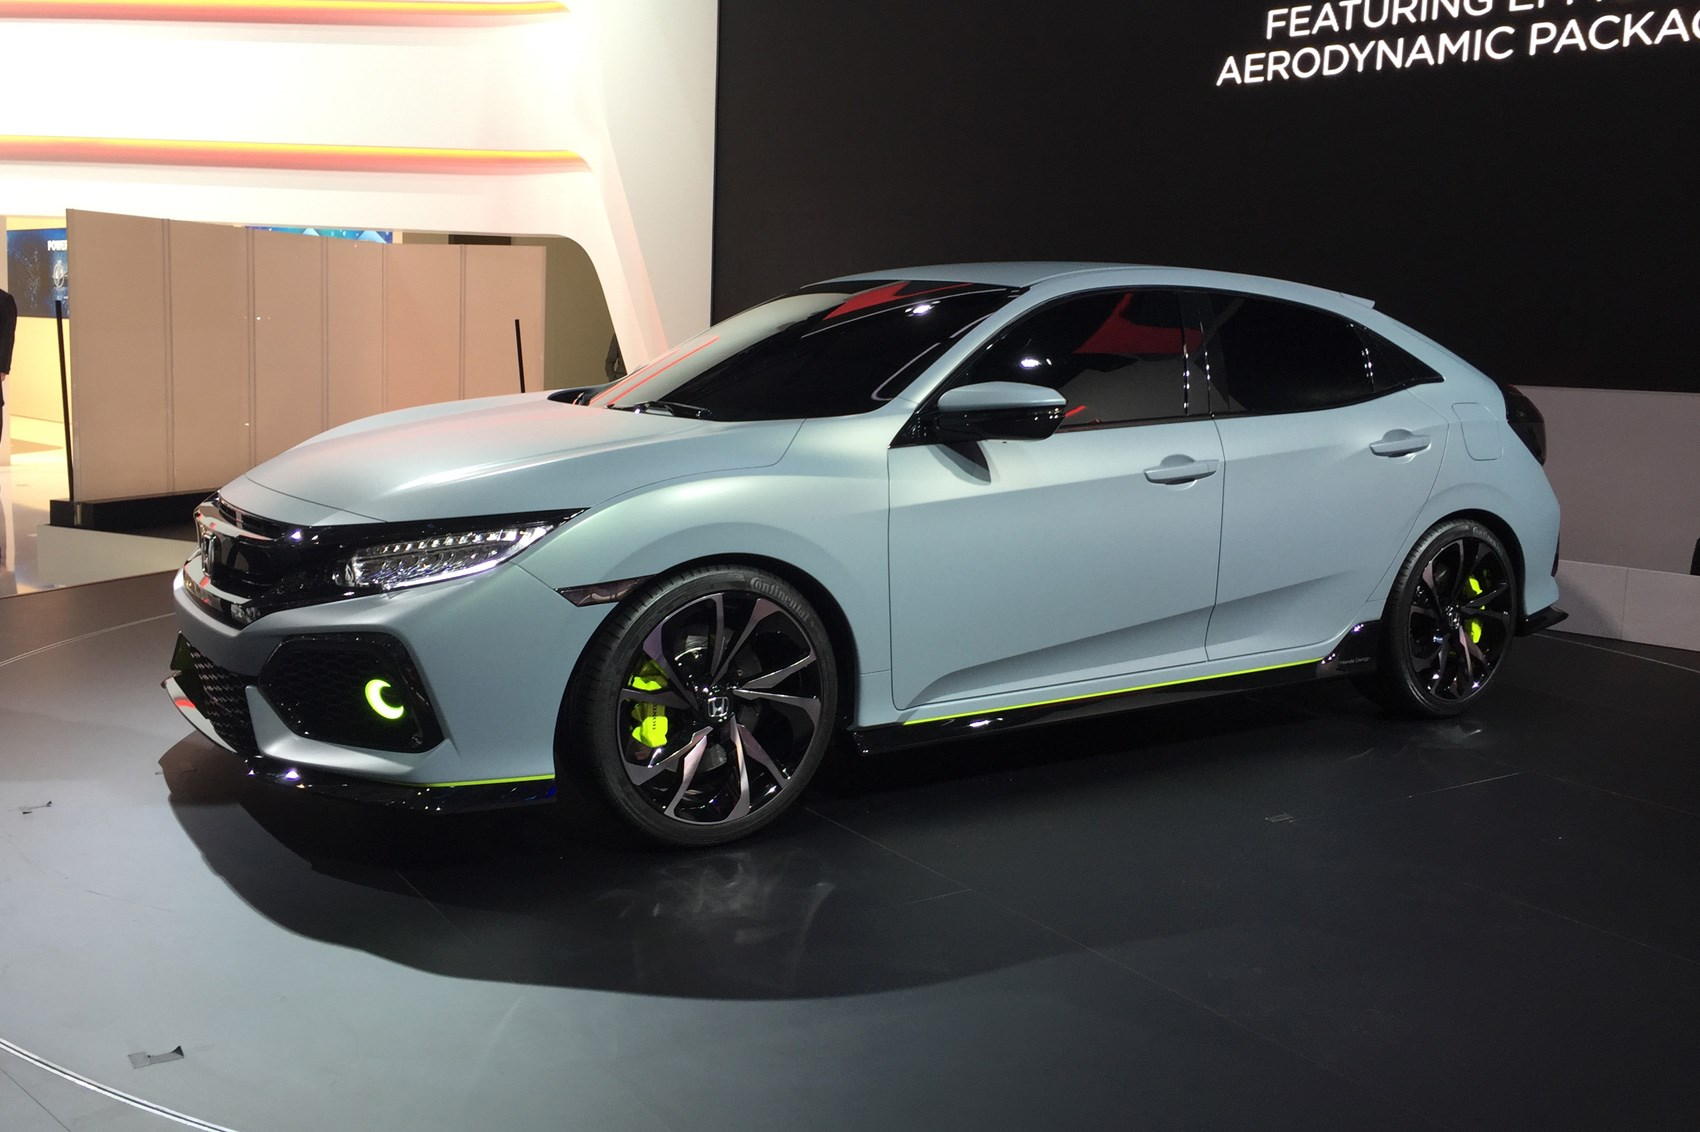 New 2017 Honda Civic Prototype Unveiled In Geneva Car Magazine Rocket Rims Plug Wiring Diagram Concept